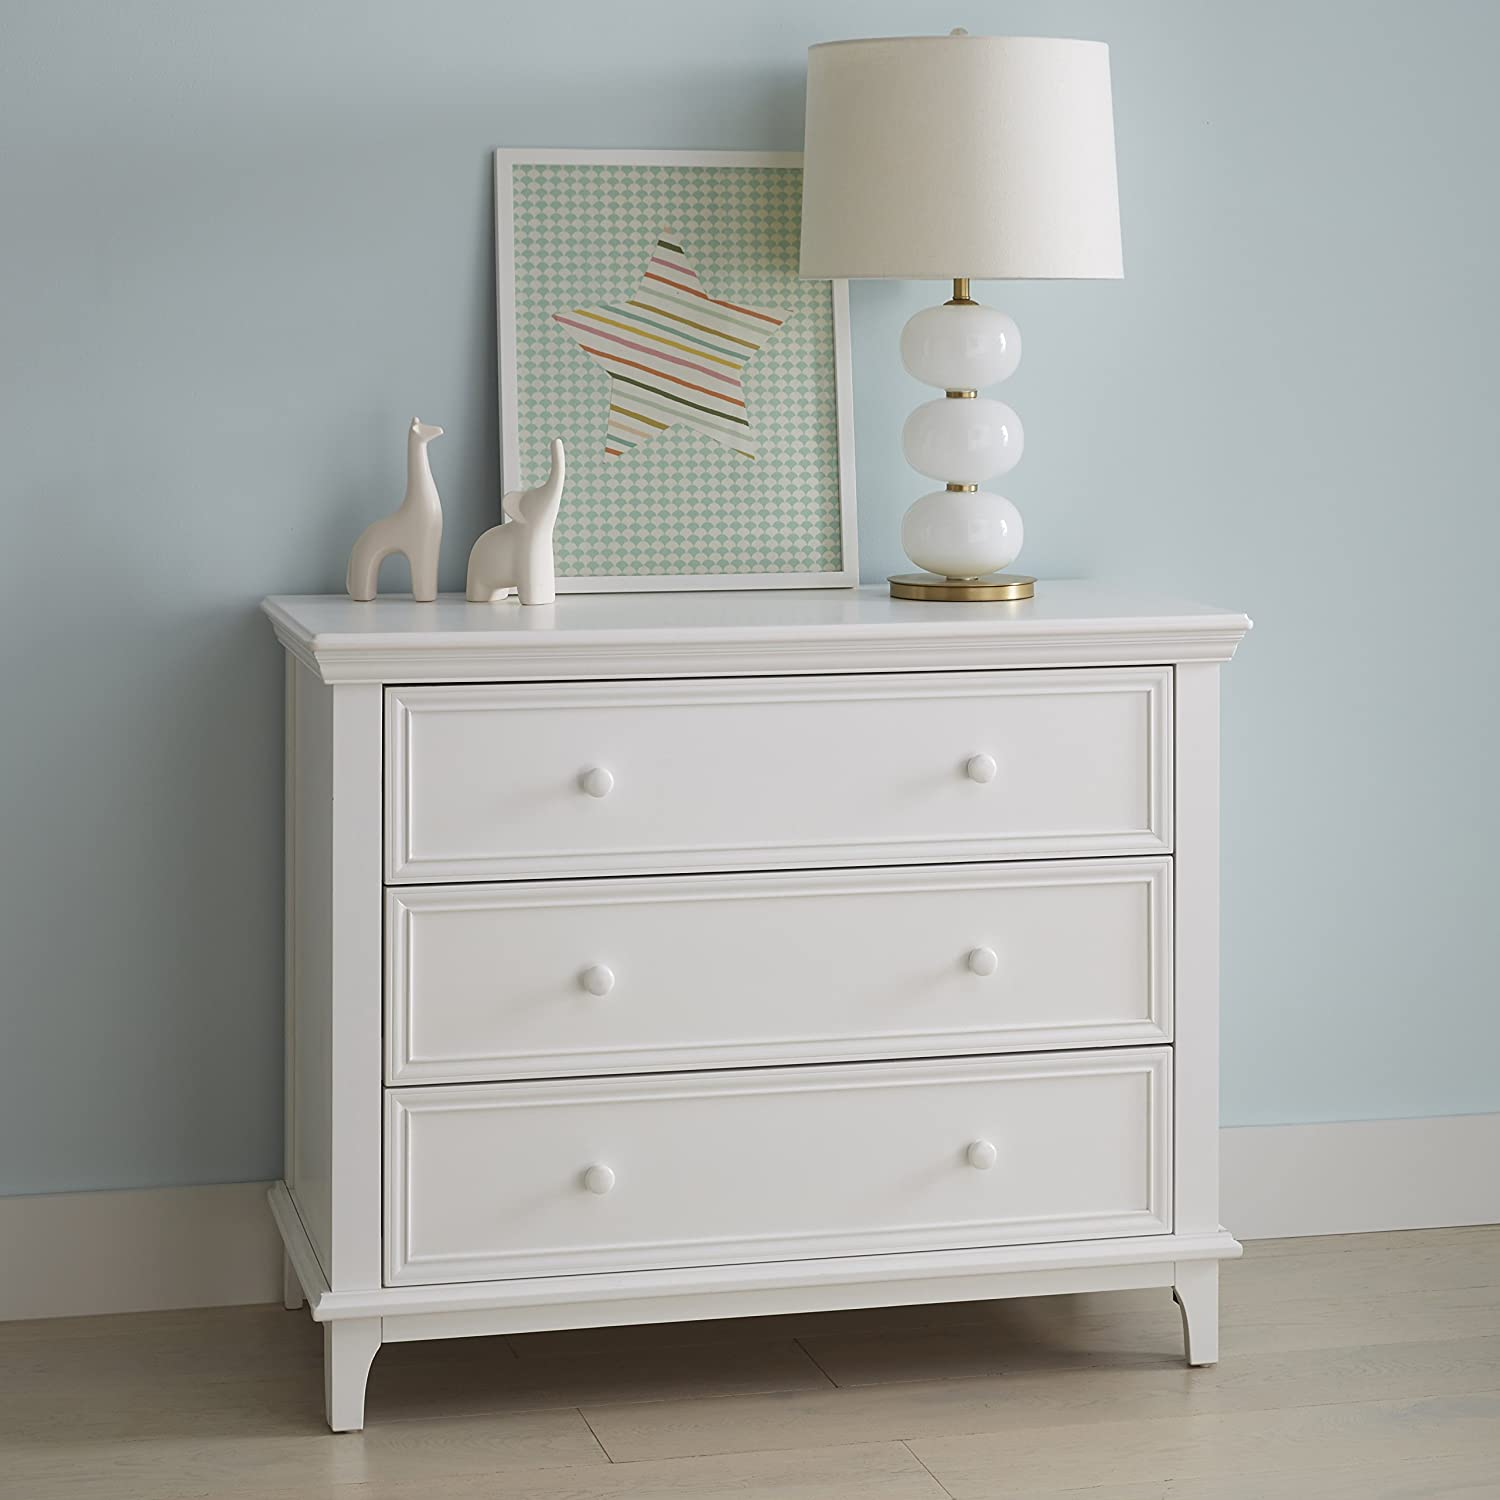 graco brooklyn ip walmart dresser white chest drawer com